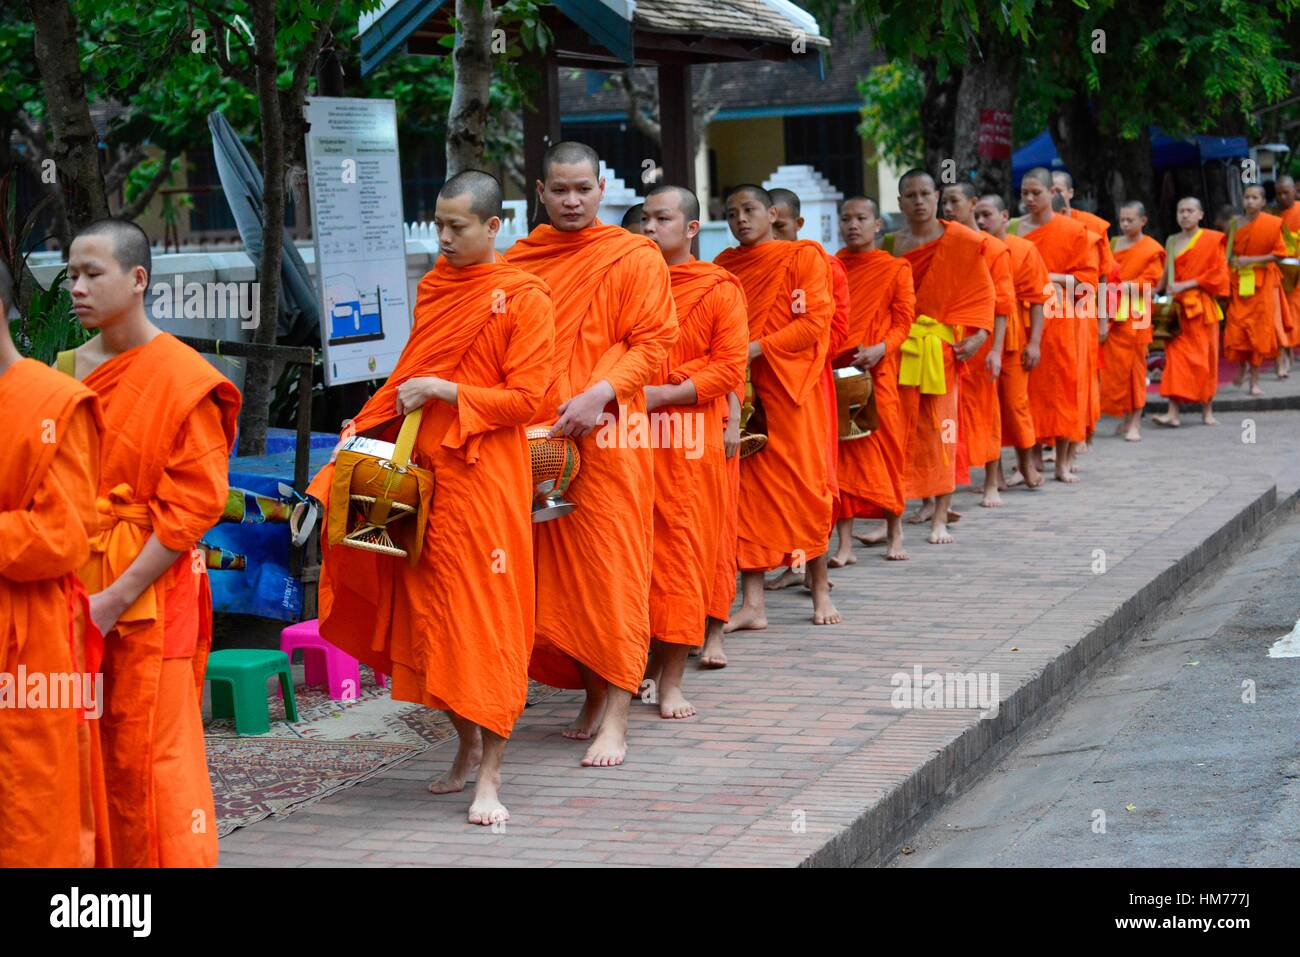 Monks collect food offerings from locals in Luang Prabang,Laos, South East Asia. - Stock Image